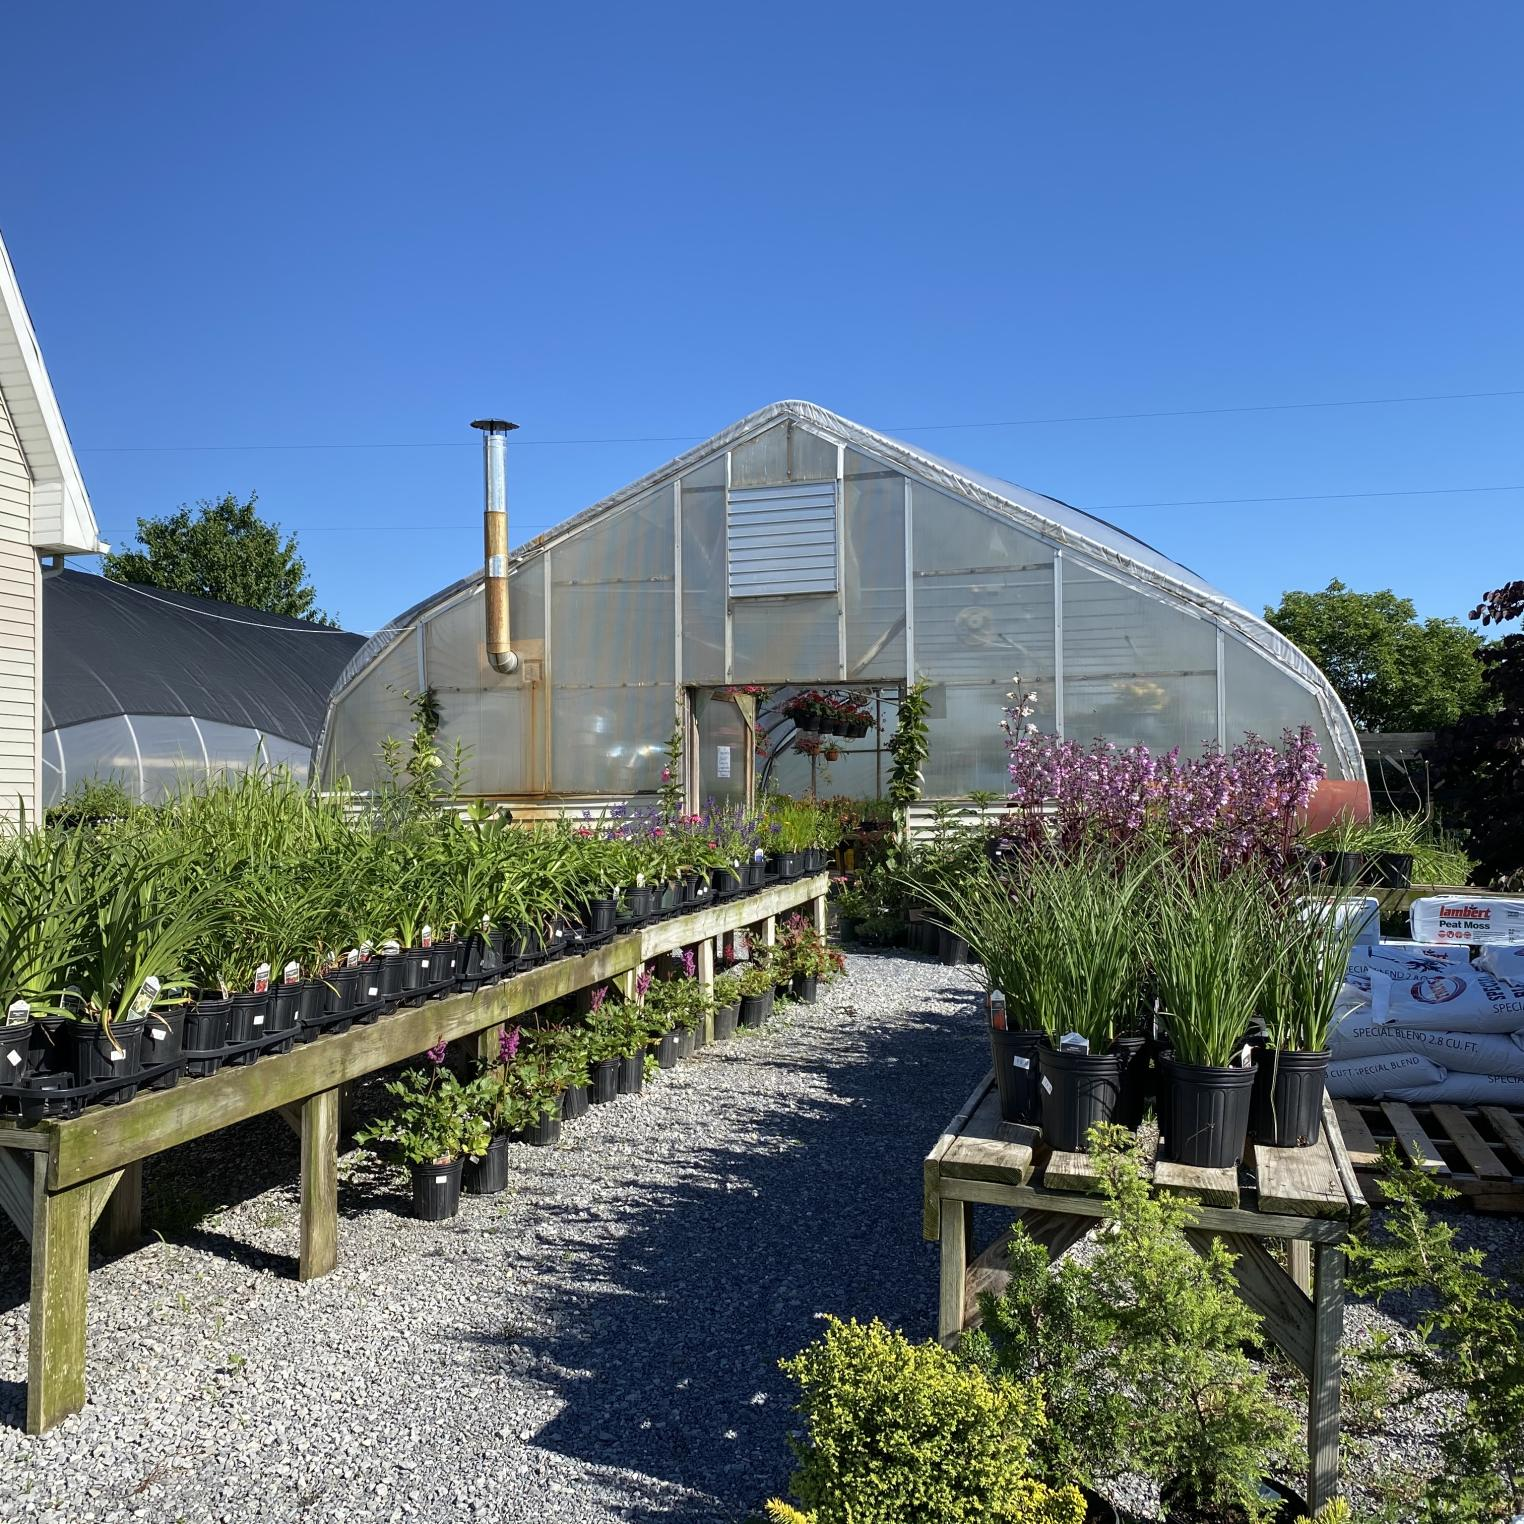 Newville Produce Farm & Greenhouses